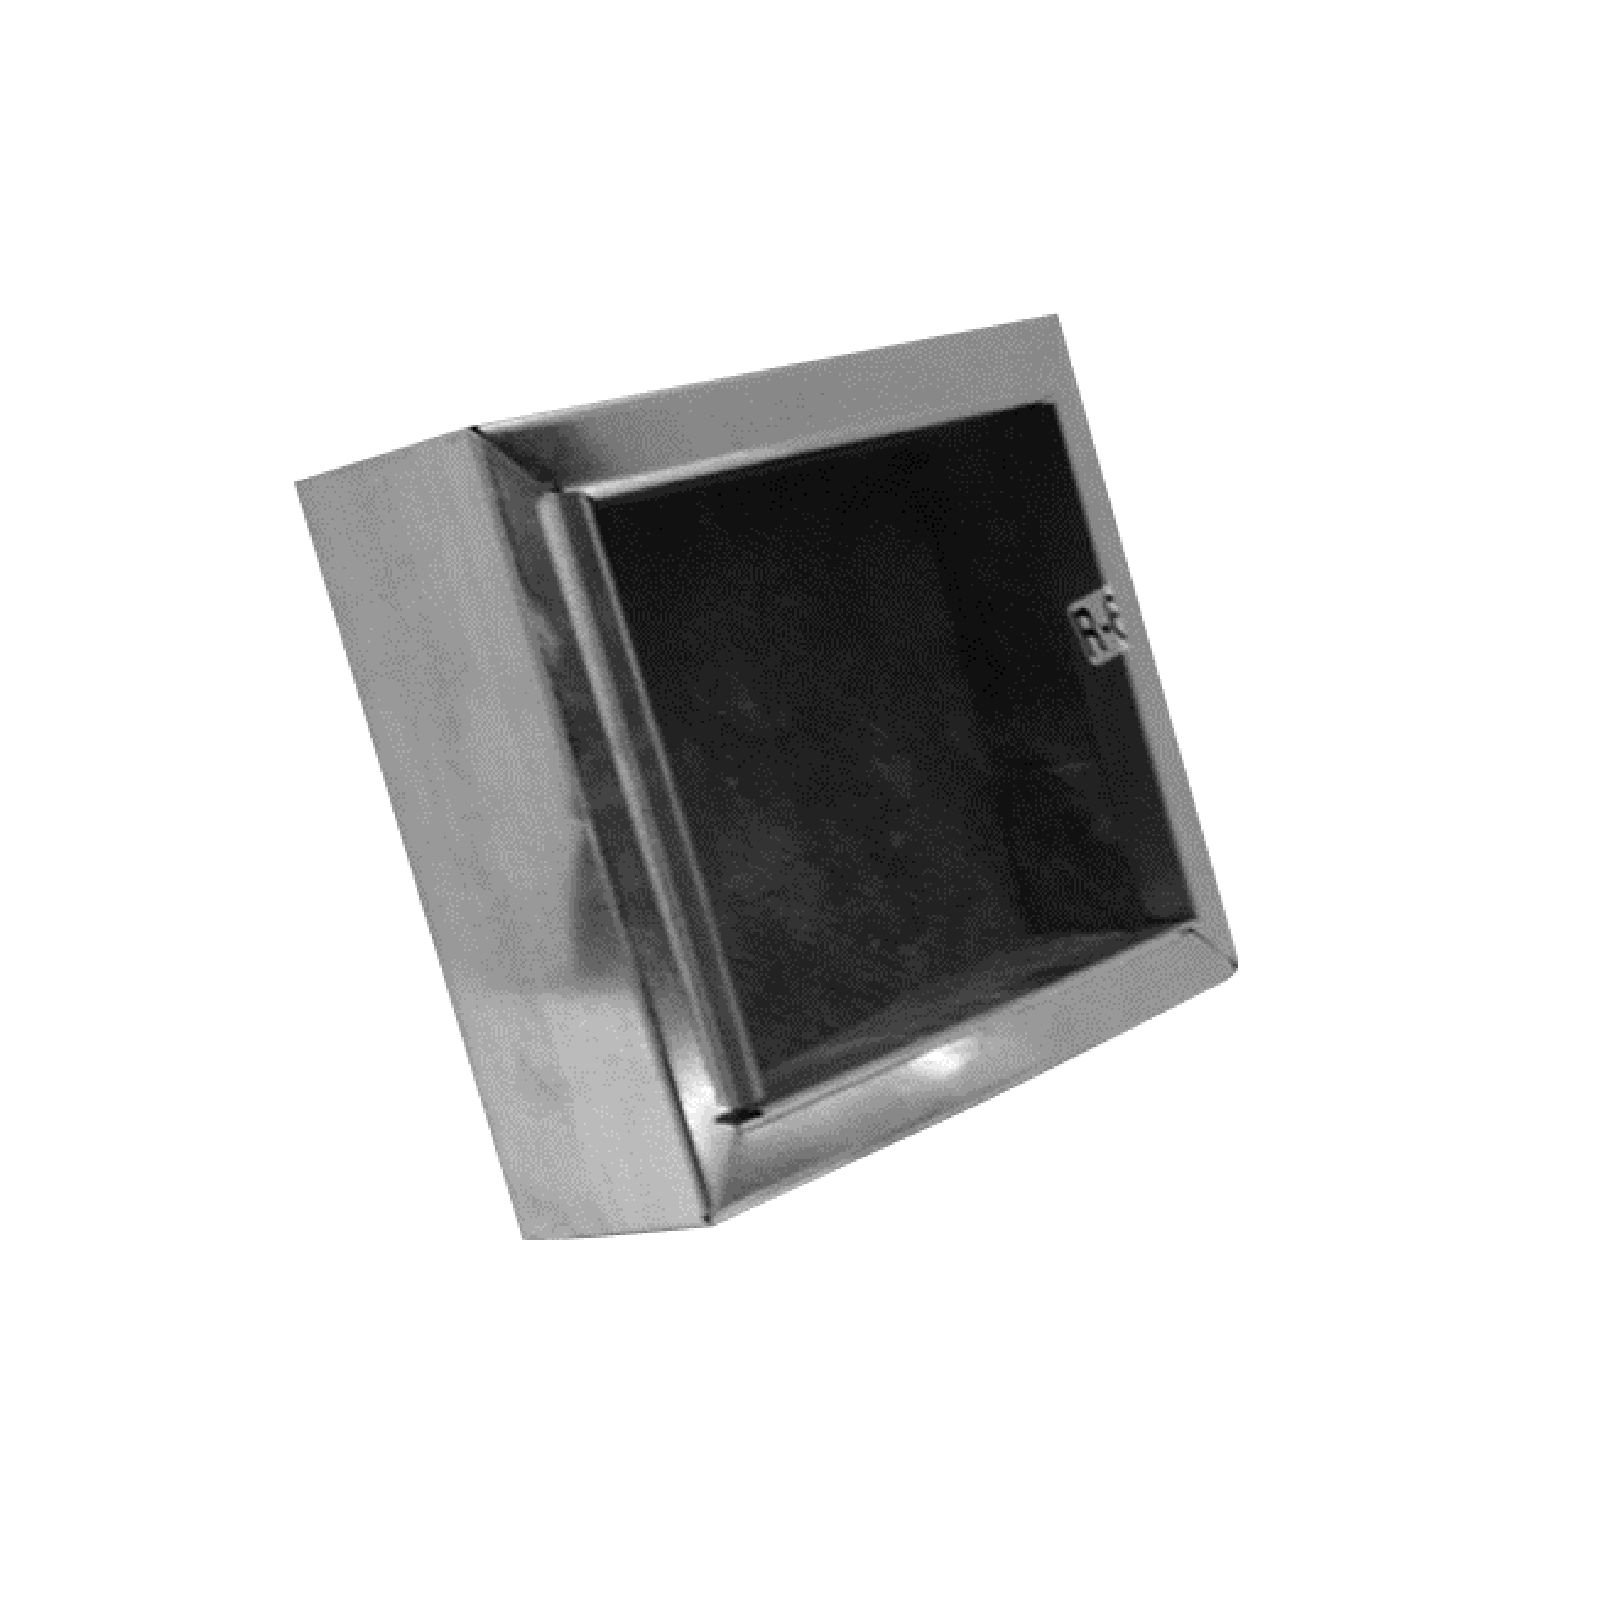 "Mitchell Metal 40R61206 - 12"" X 6"" Ductboard Register Box - R6 Ductboard Applications"